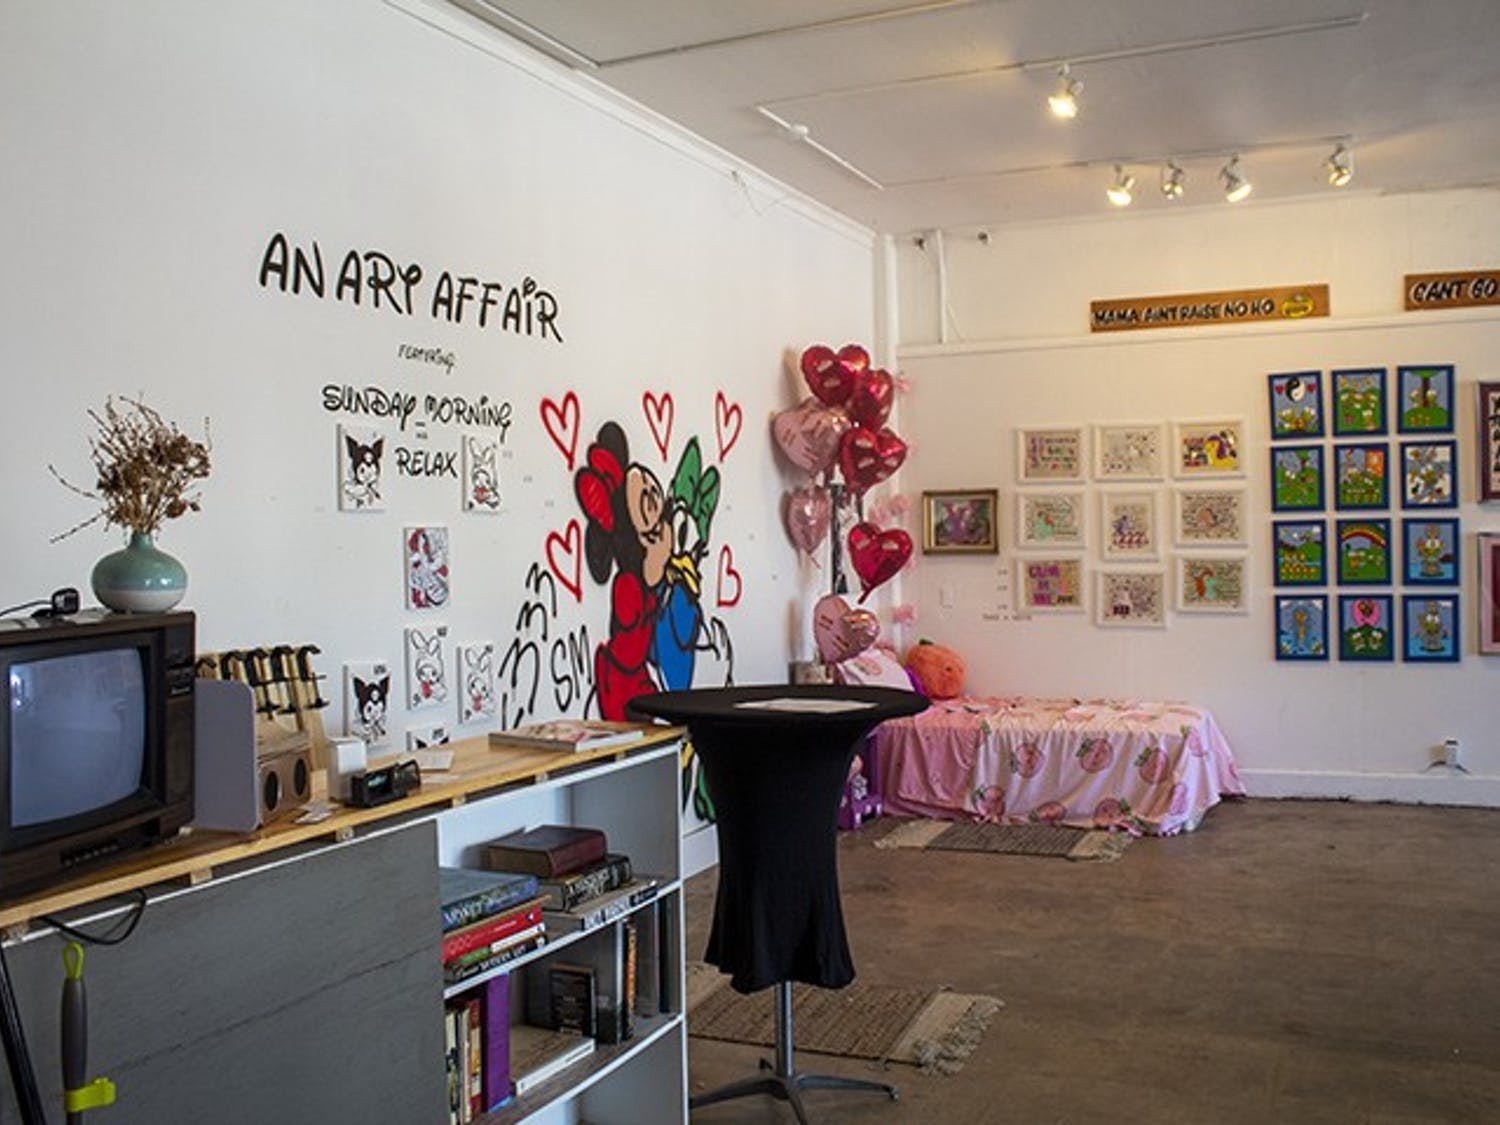 The main showroom of Tapp's Outpost shows the work of the many artists who work in the space. Tapp's Outpost is located at 713 Saluda Ave. in Five Points.